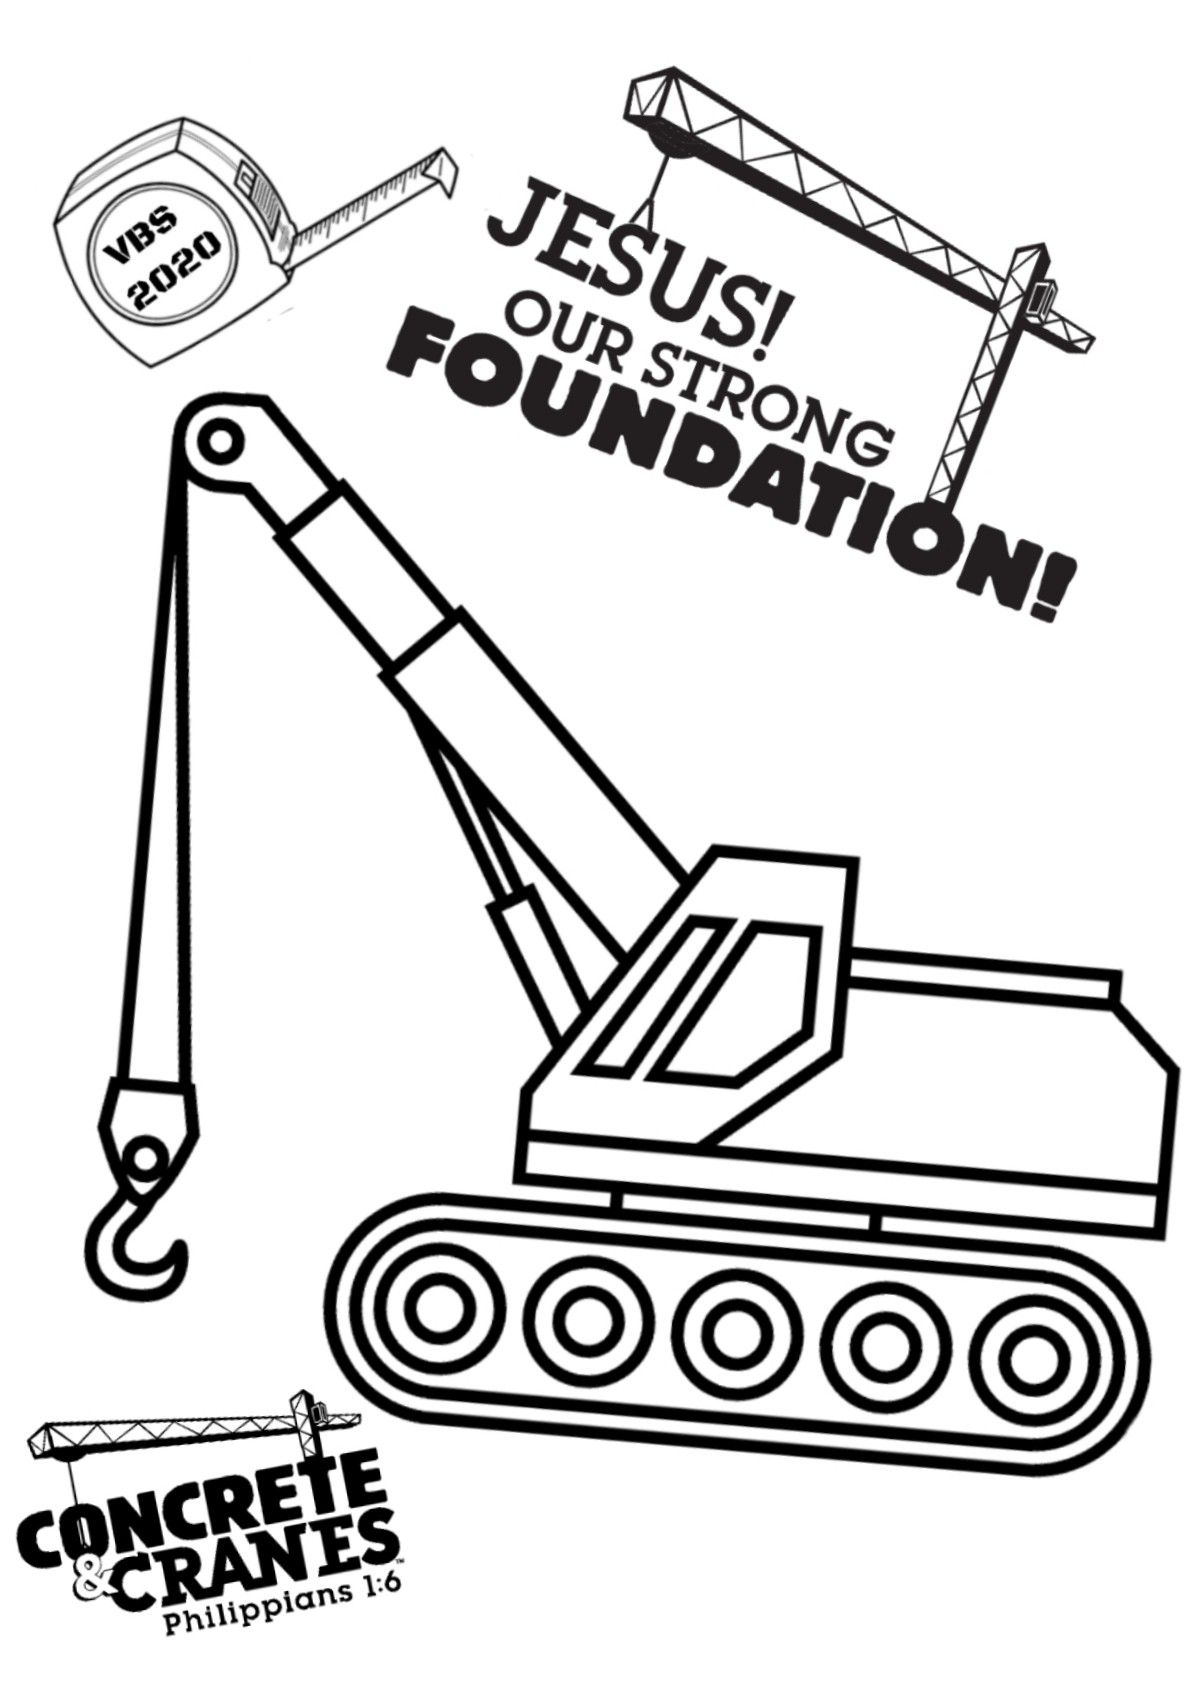 A Custom Concrete And Cranes Vbs Coloring Page Great To Use